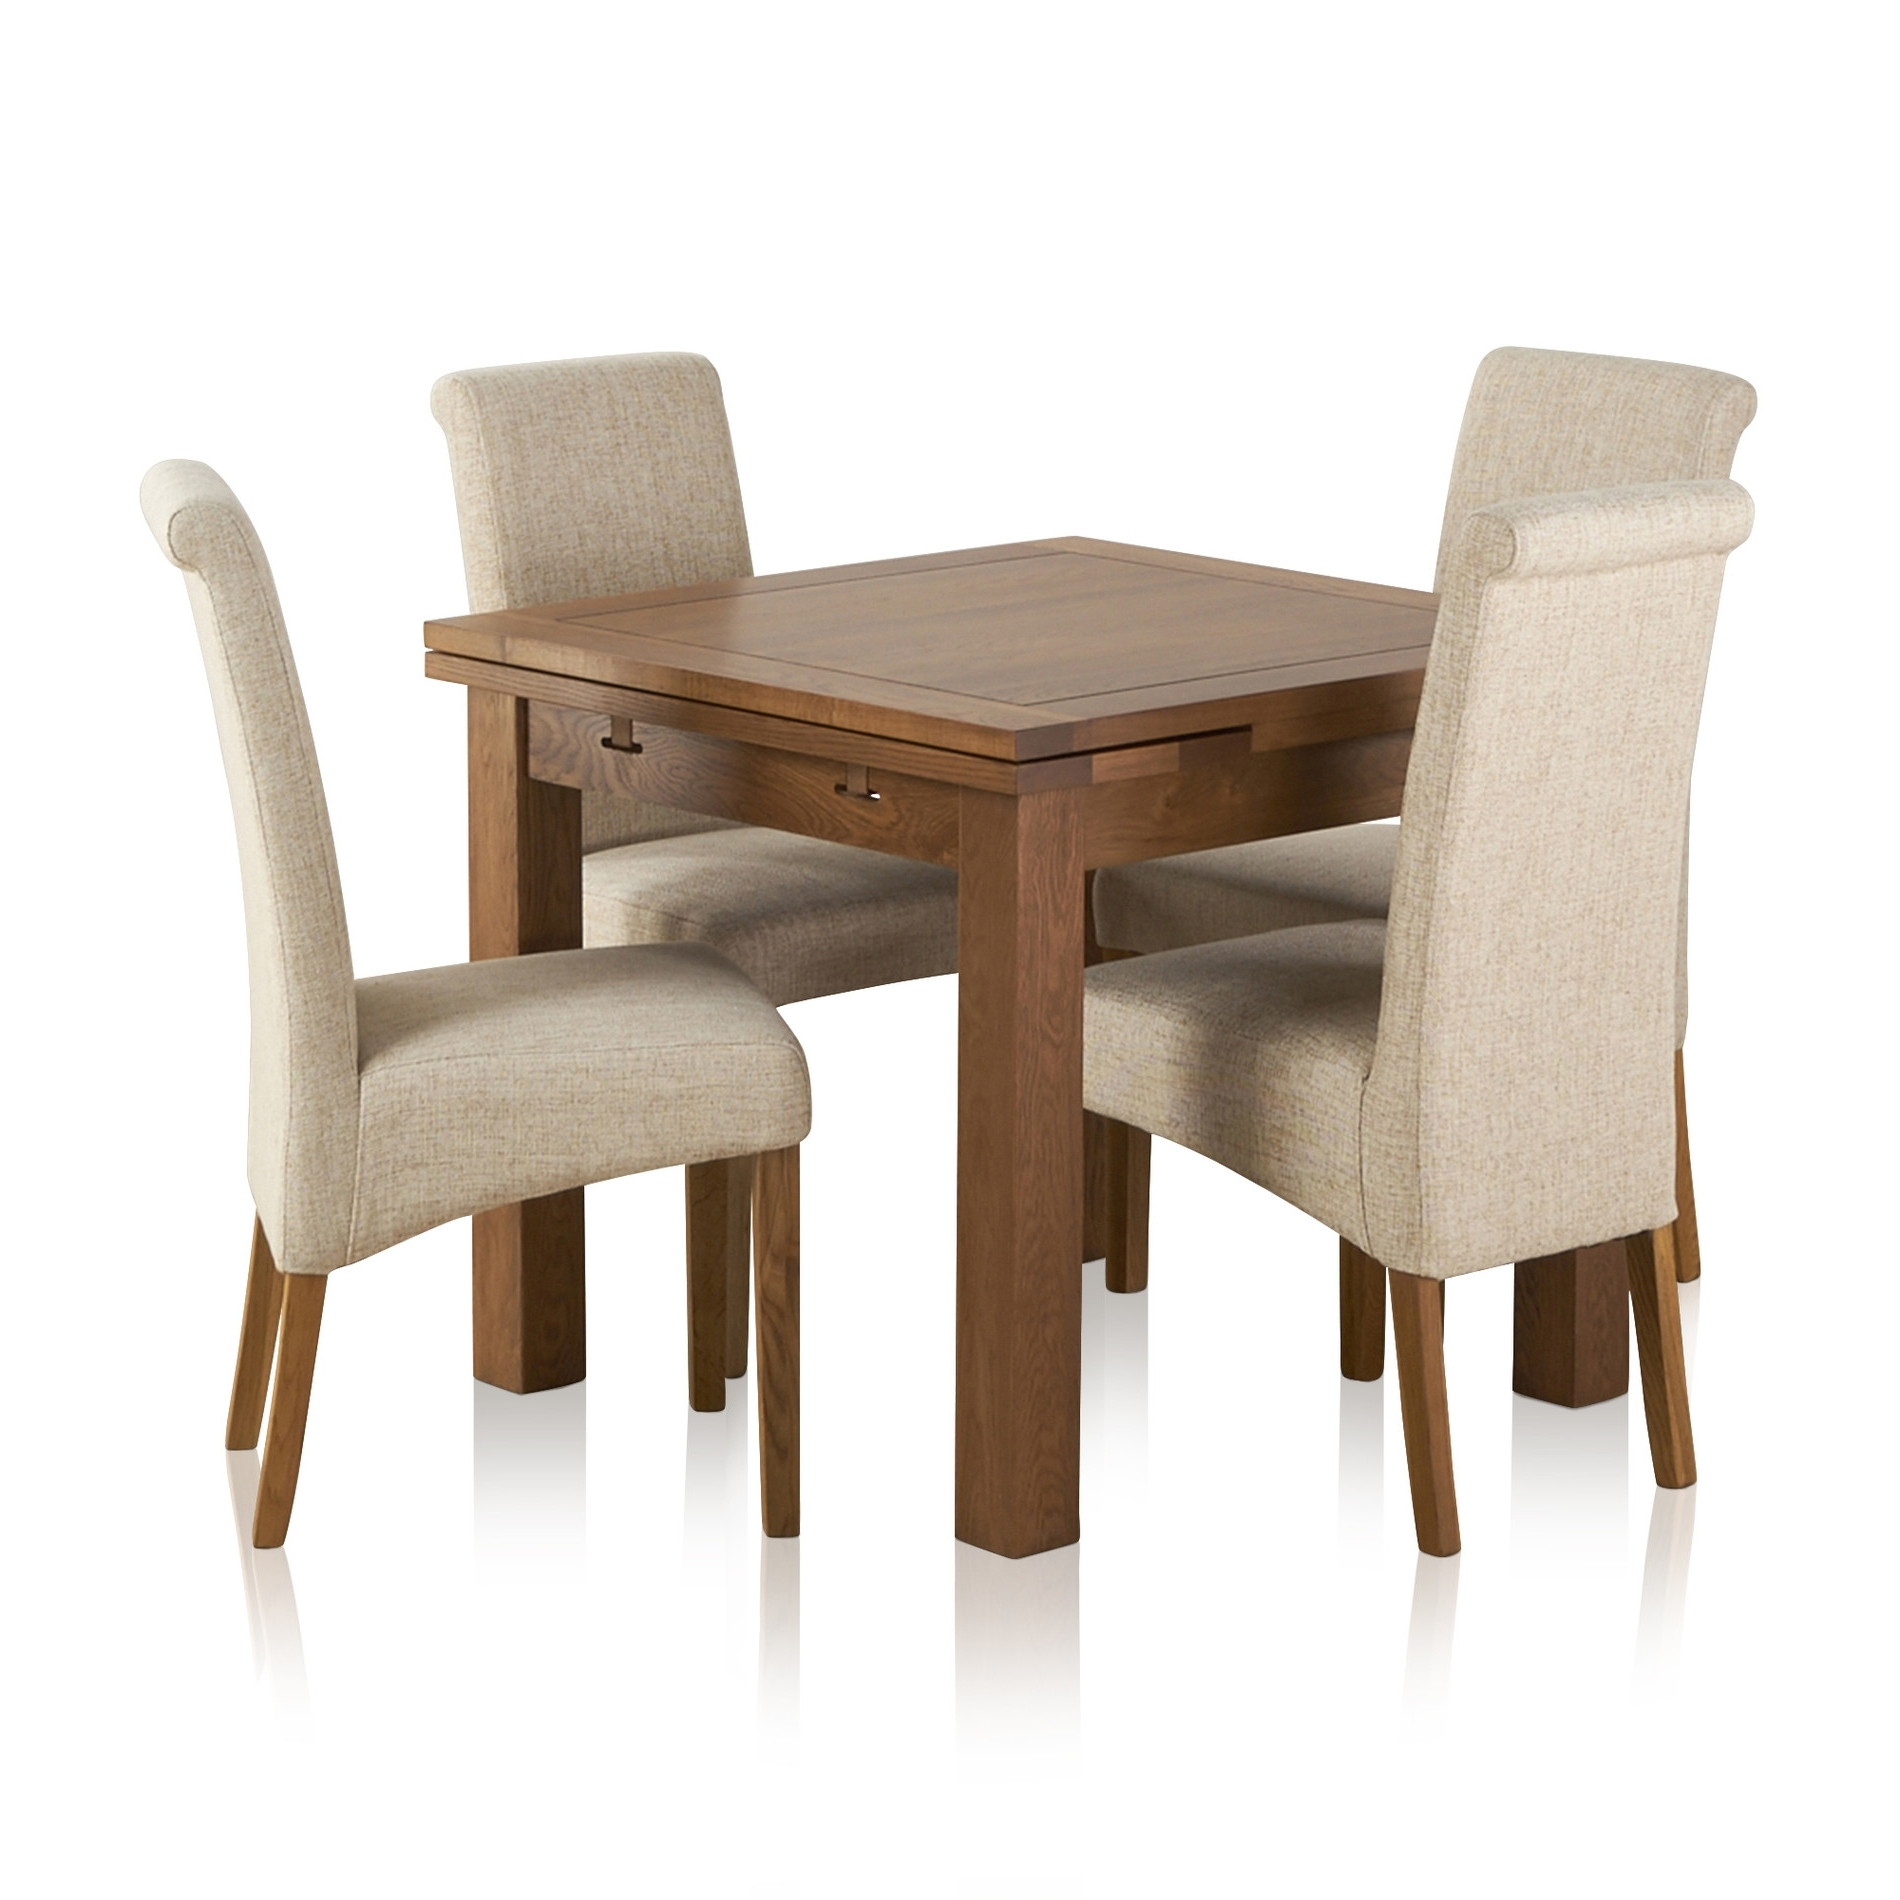 Extending Dining Table In Rustic Oak With 4 Beige Fabric Chairs Regarding Latest Dining Tables And Fabric Chairs (View 17 of 25)